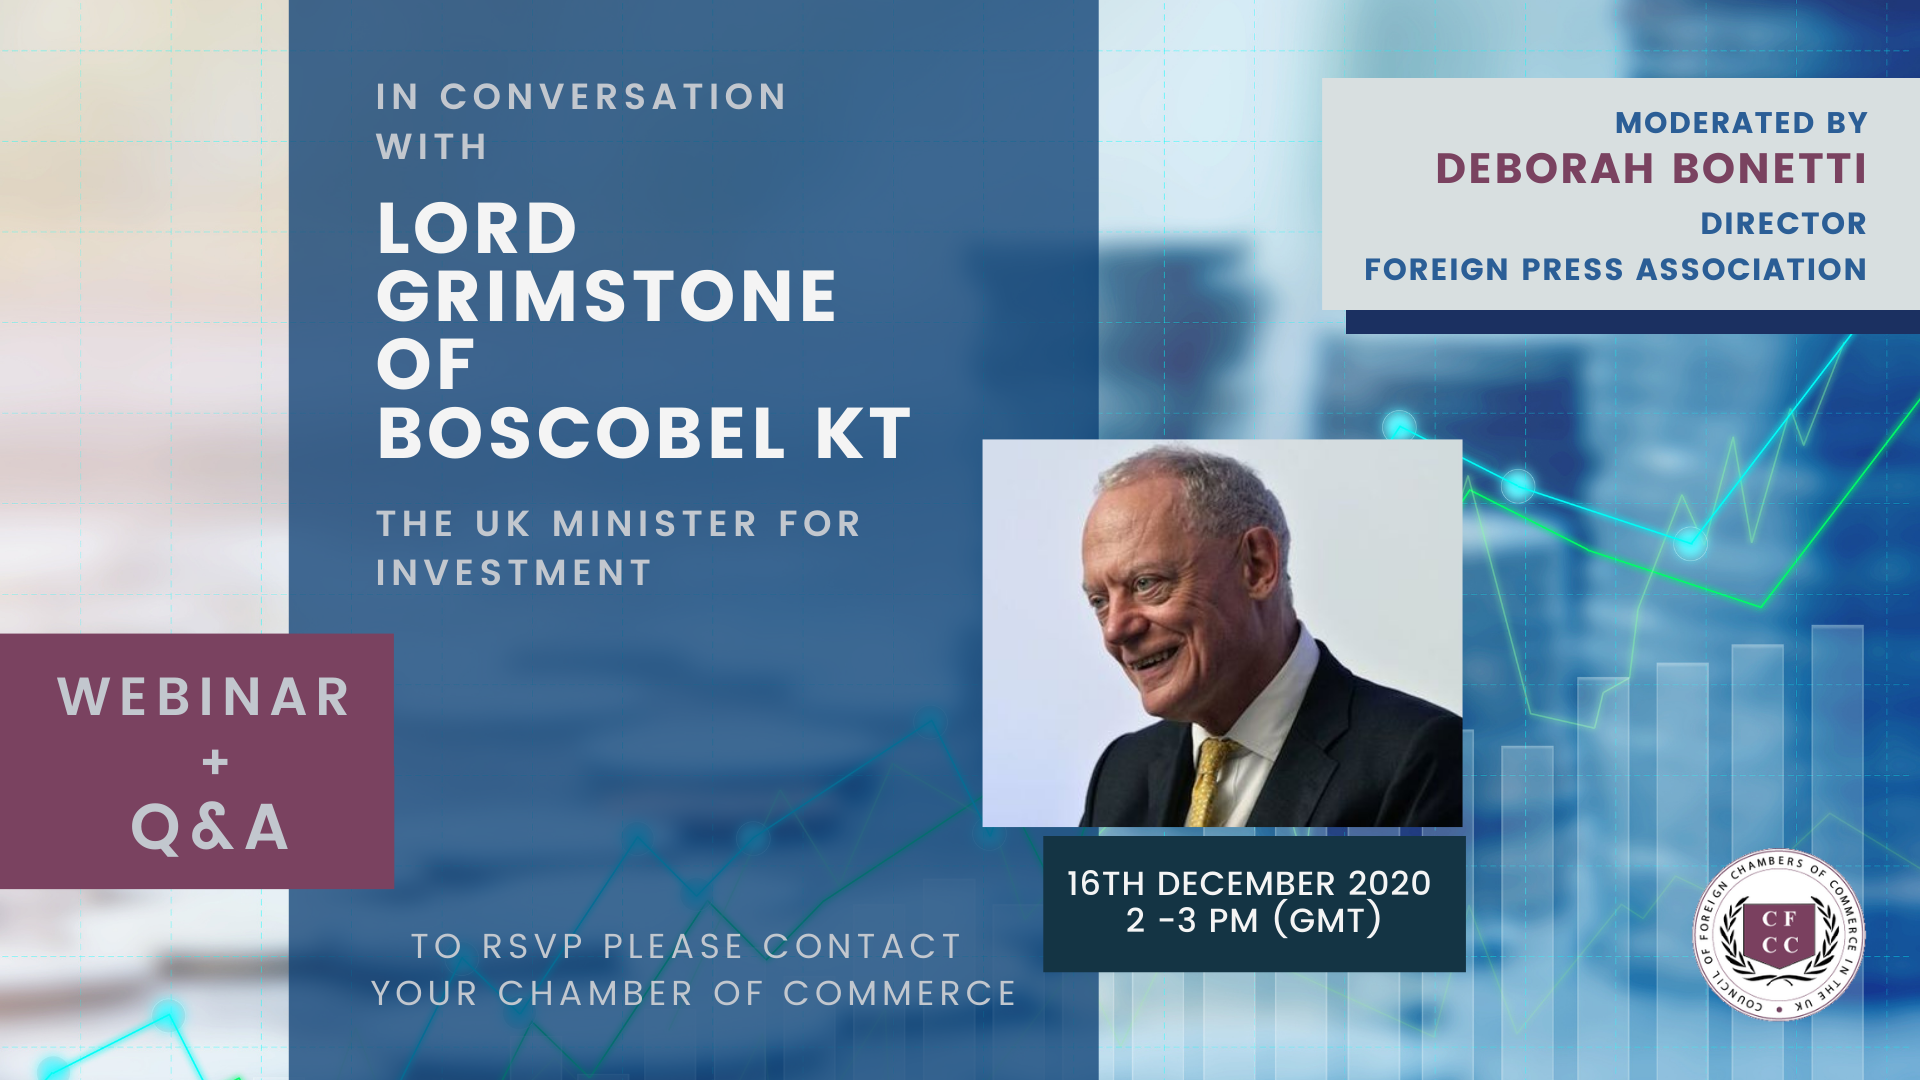 In conversation with the UK Minister for Investment Lord Grimstone of Boscobel Kt